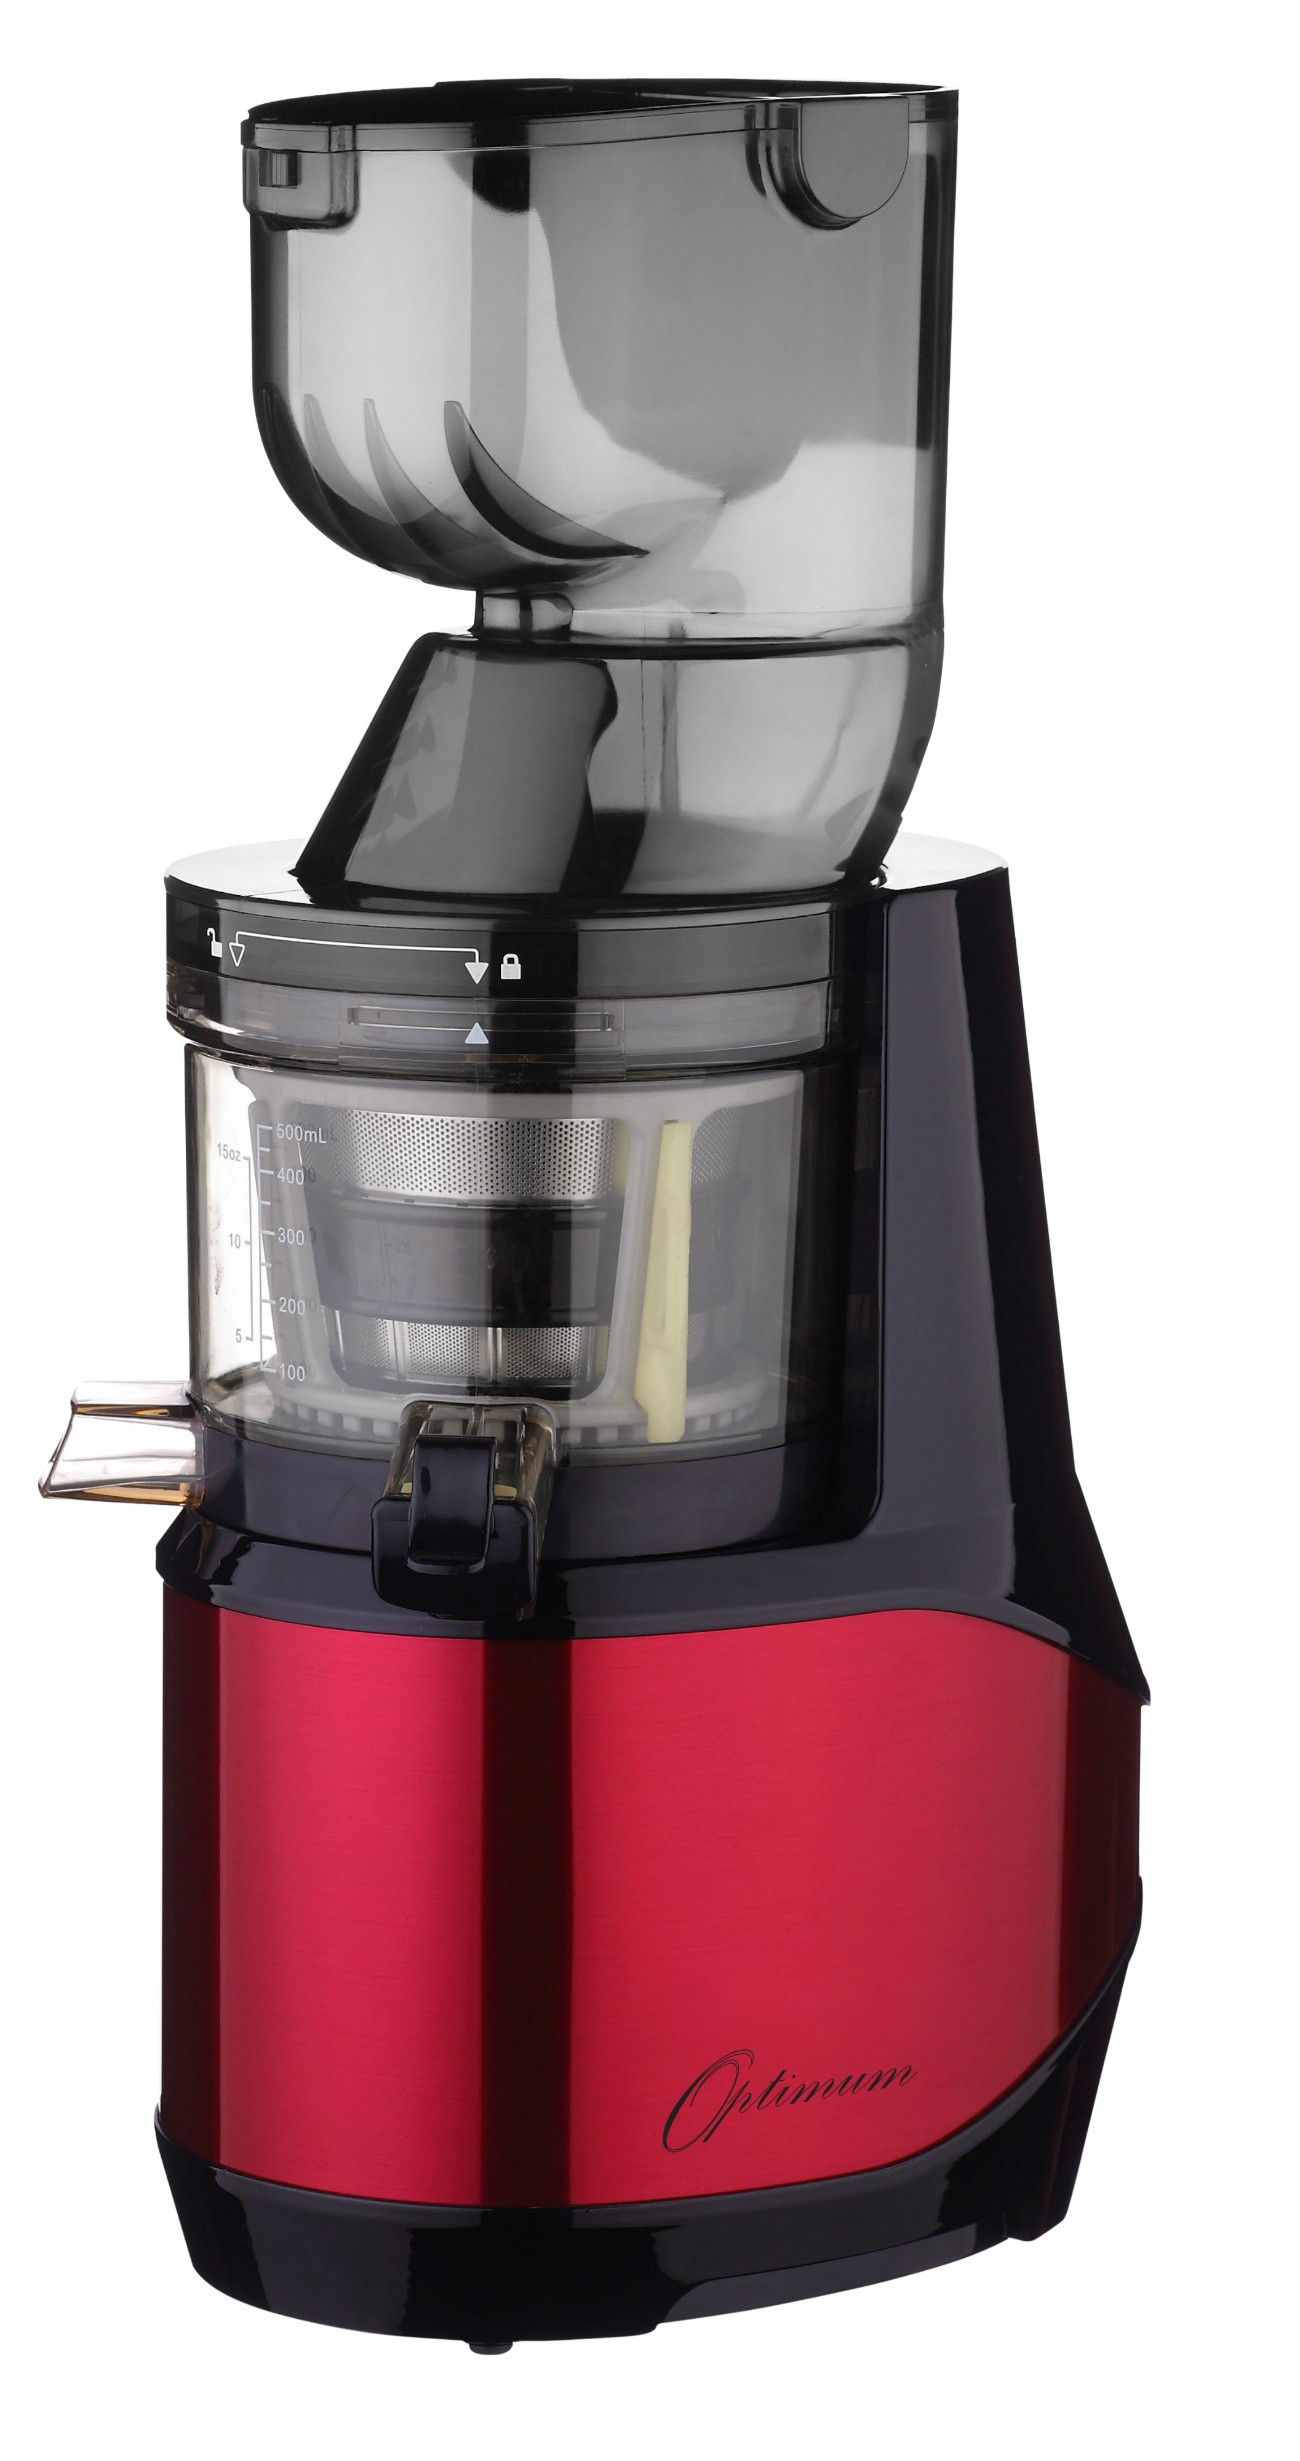 Slow Juicer Optimum 700 : Optimum 700 Reviews - ProductReview.com.au